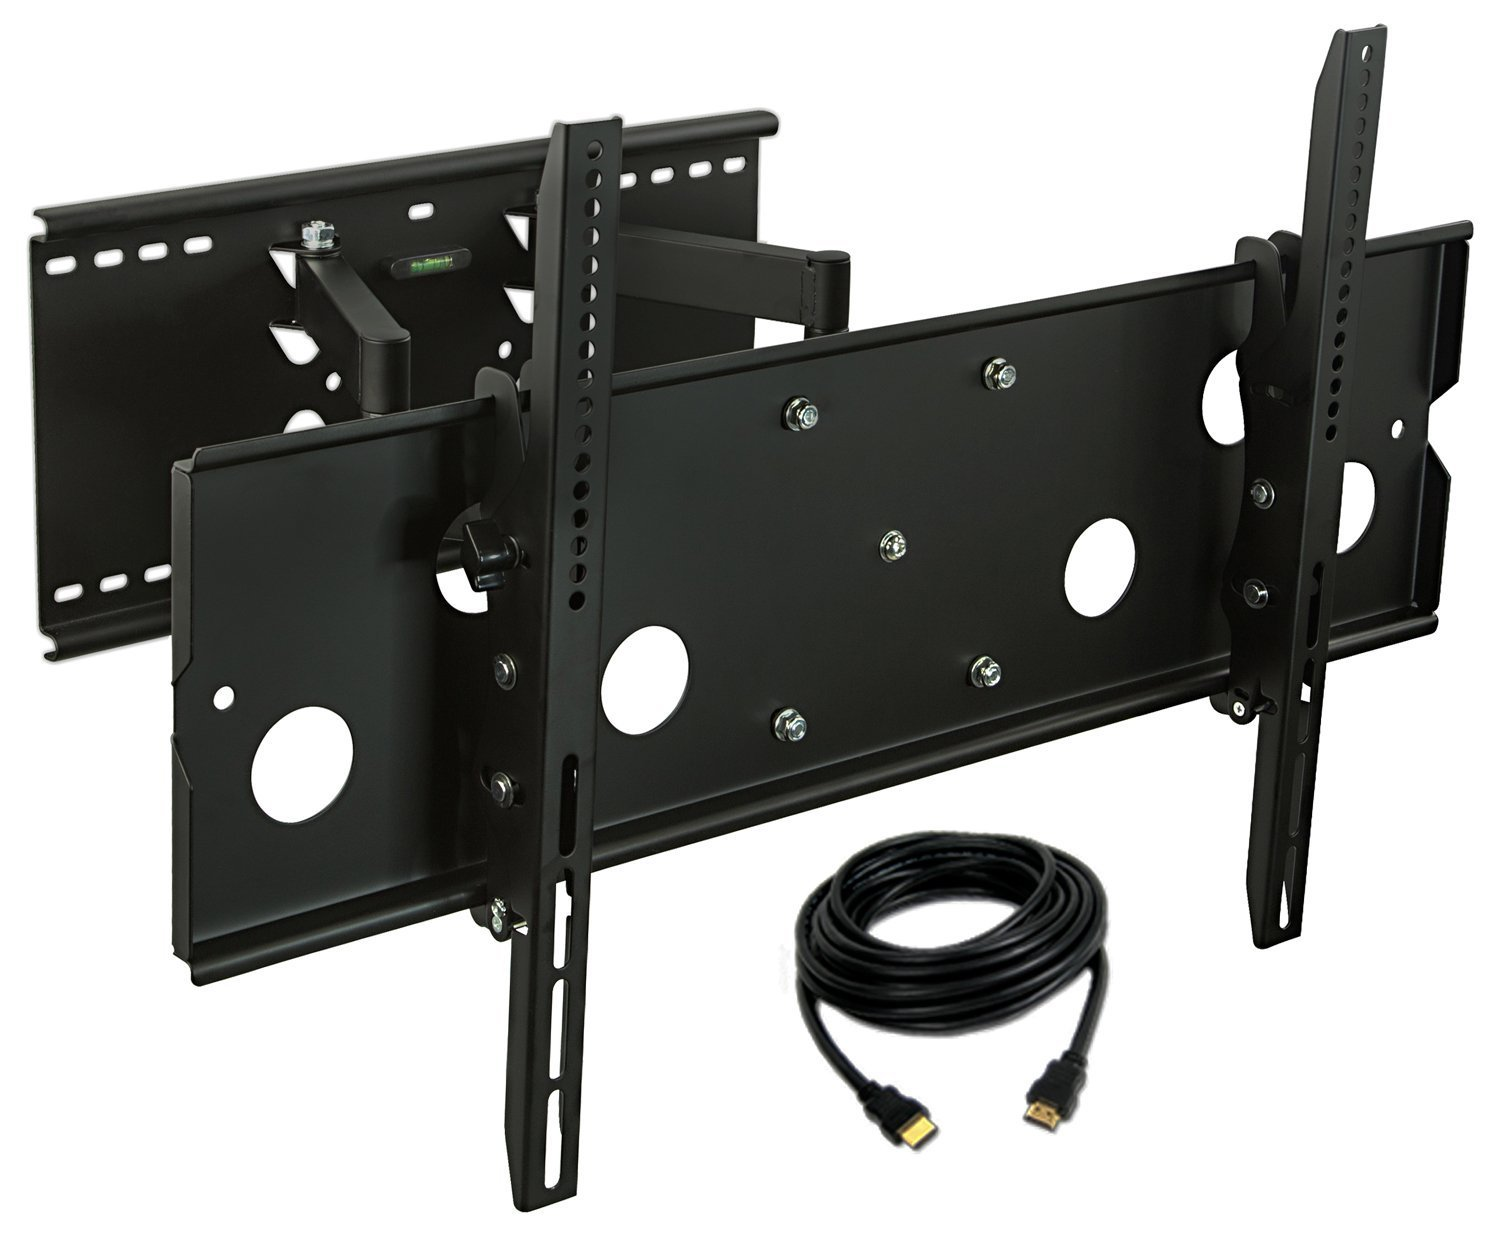 Mount-it! MI-310B-CBL TV Wall Mount Full Motion and Heavy-Duty, Swivels and Tilts, for LCD LED Plasma 32'' - 60'' Screens, 175 lb Weight Capacity, 6 Ft. HDMI Cable Included, Black (MI-310B)